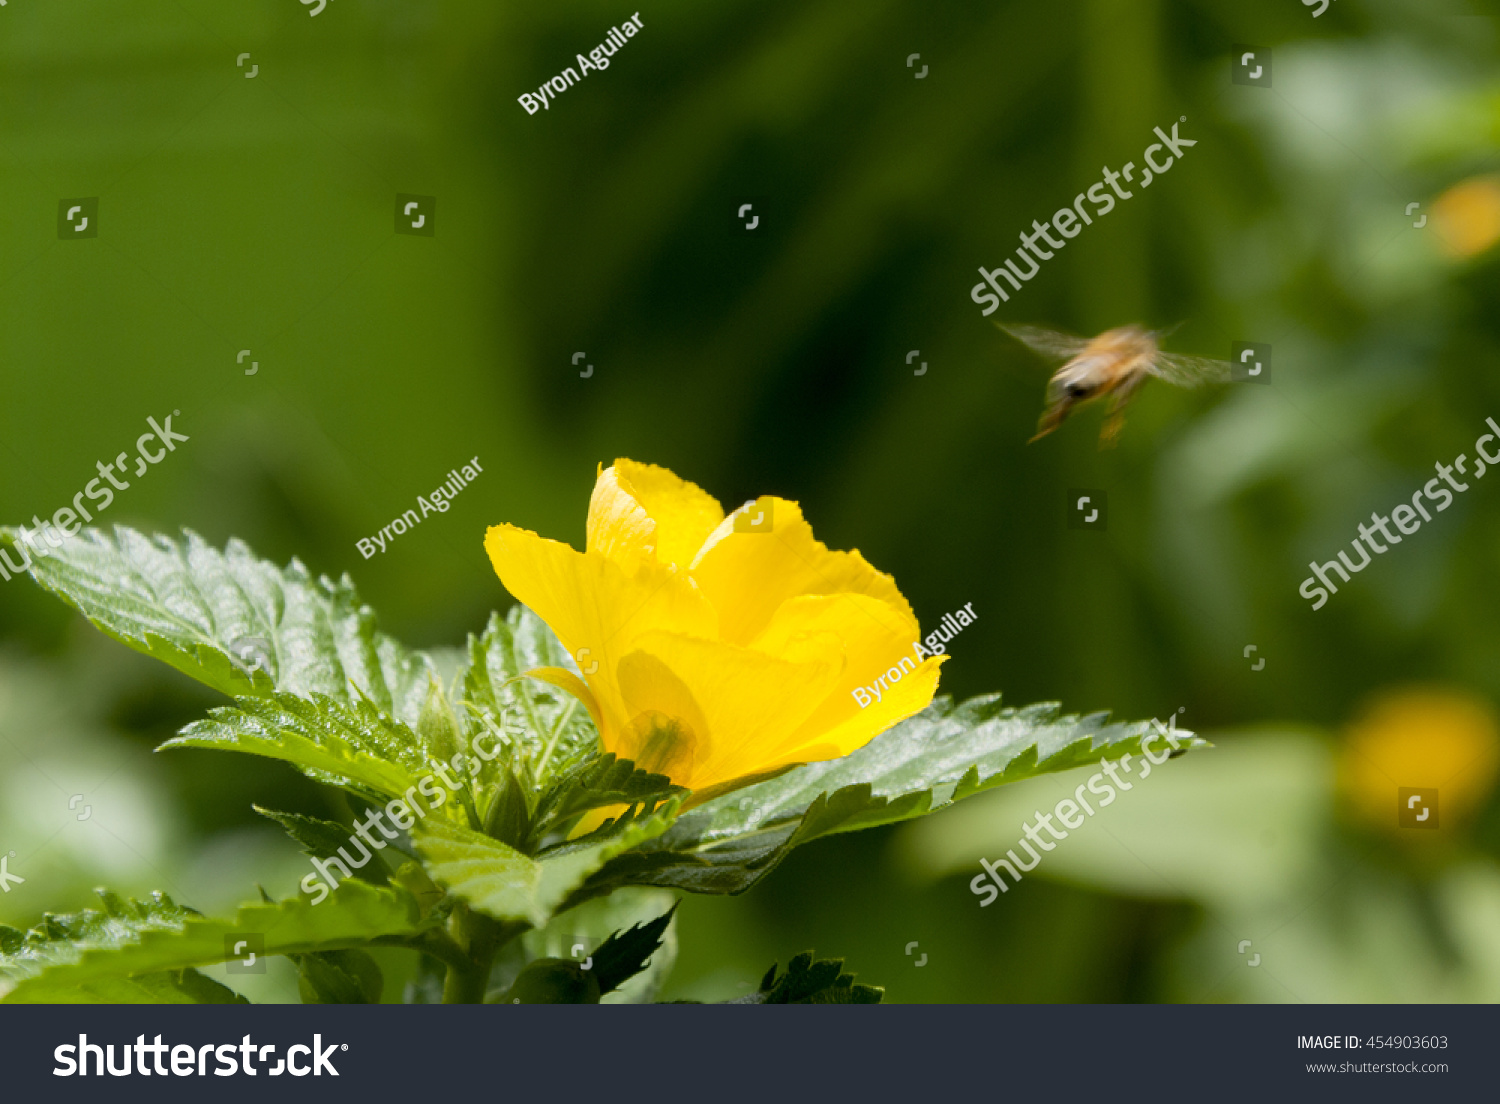 Bee On Yellow Sage Rose Flower Stock Photo Royalty Free 454903603